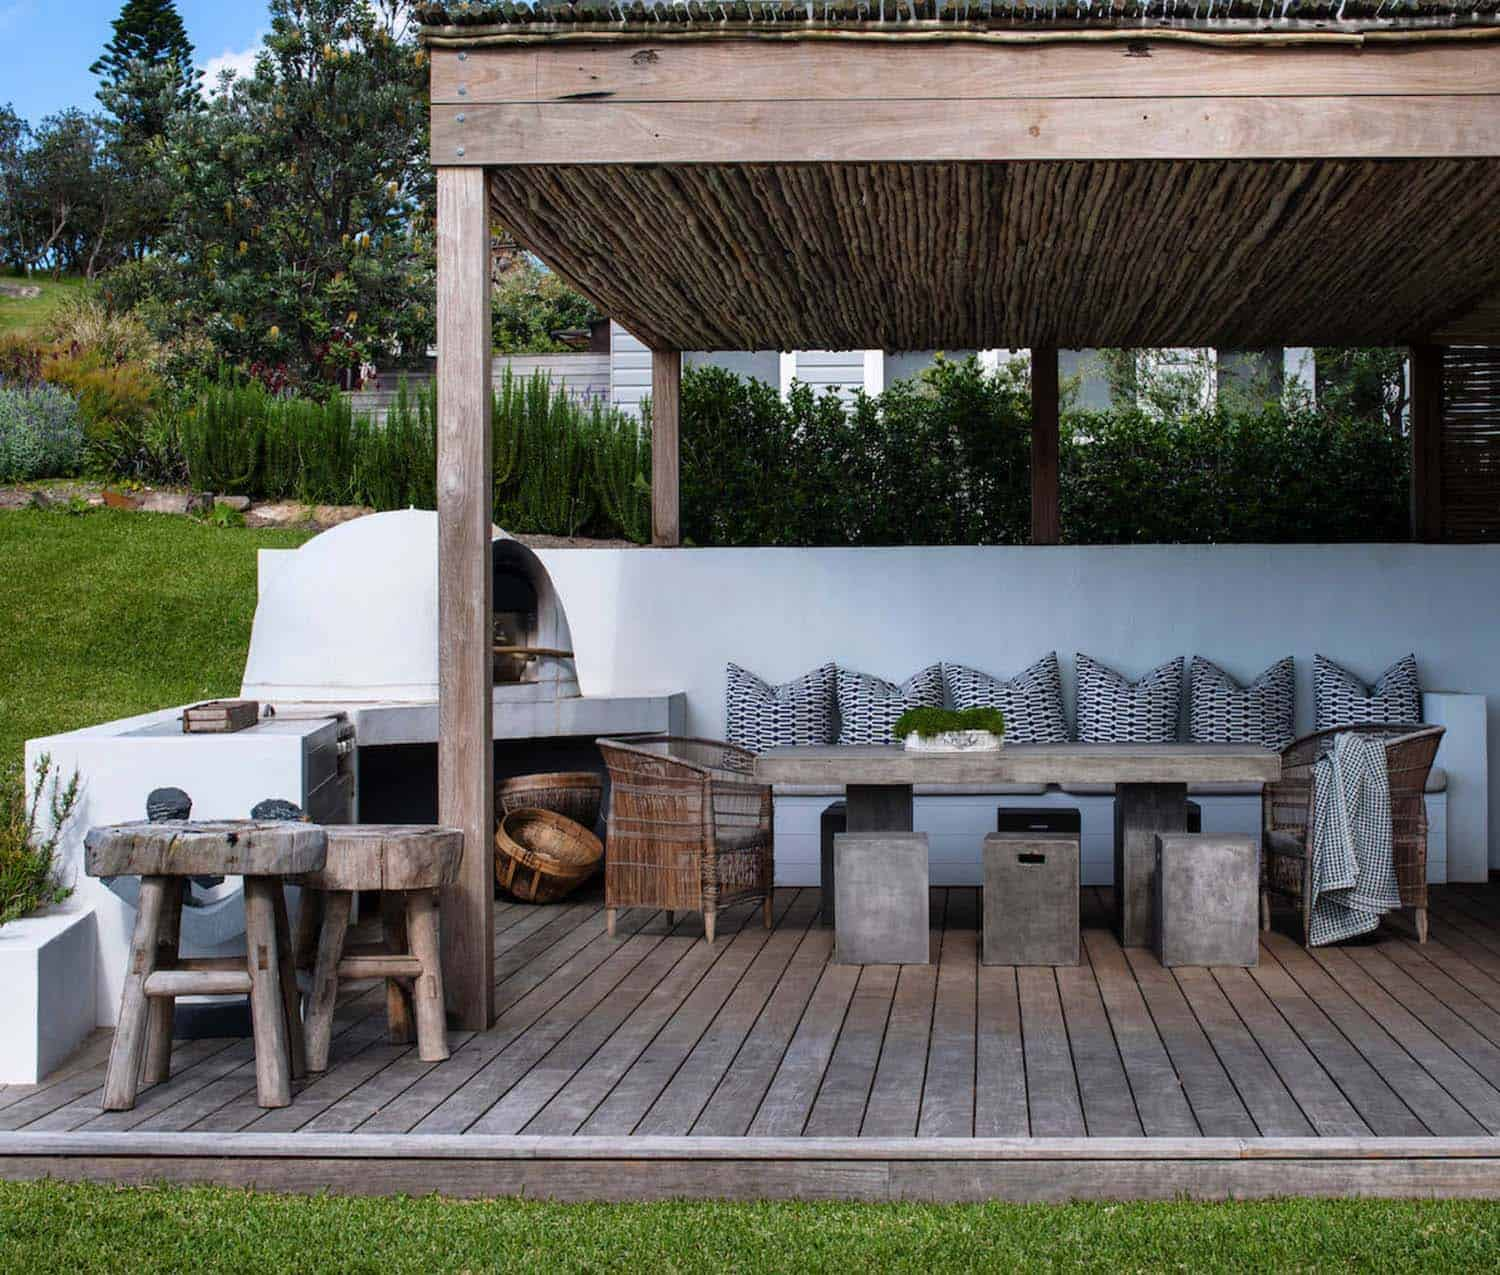 35 Brilliant and inspiring patio ideas for outdoor living ... on Covered Outdoor Living Area id=58513